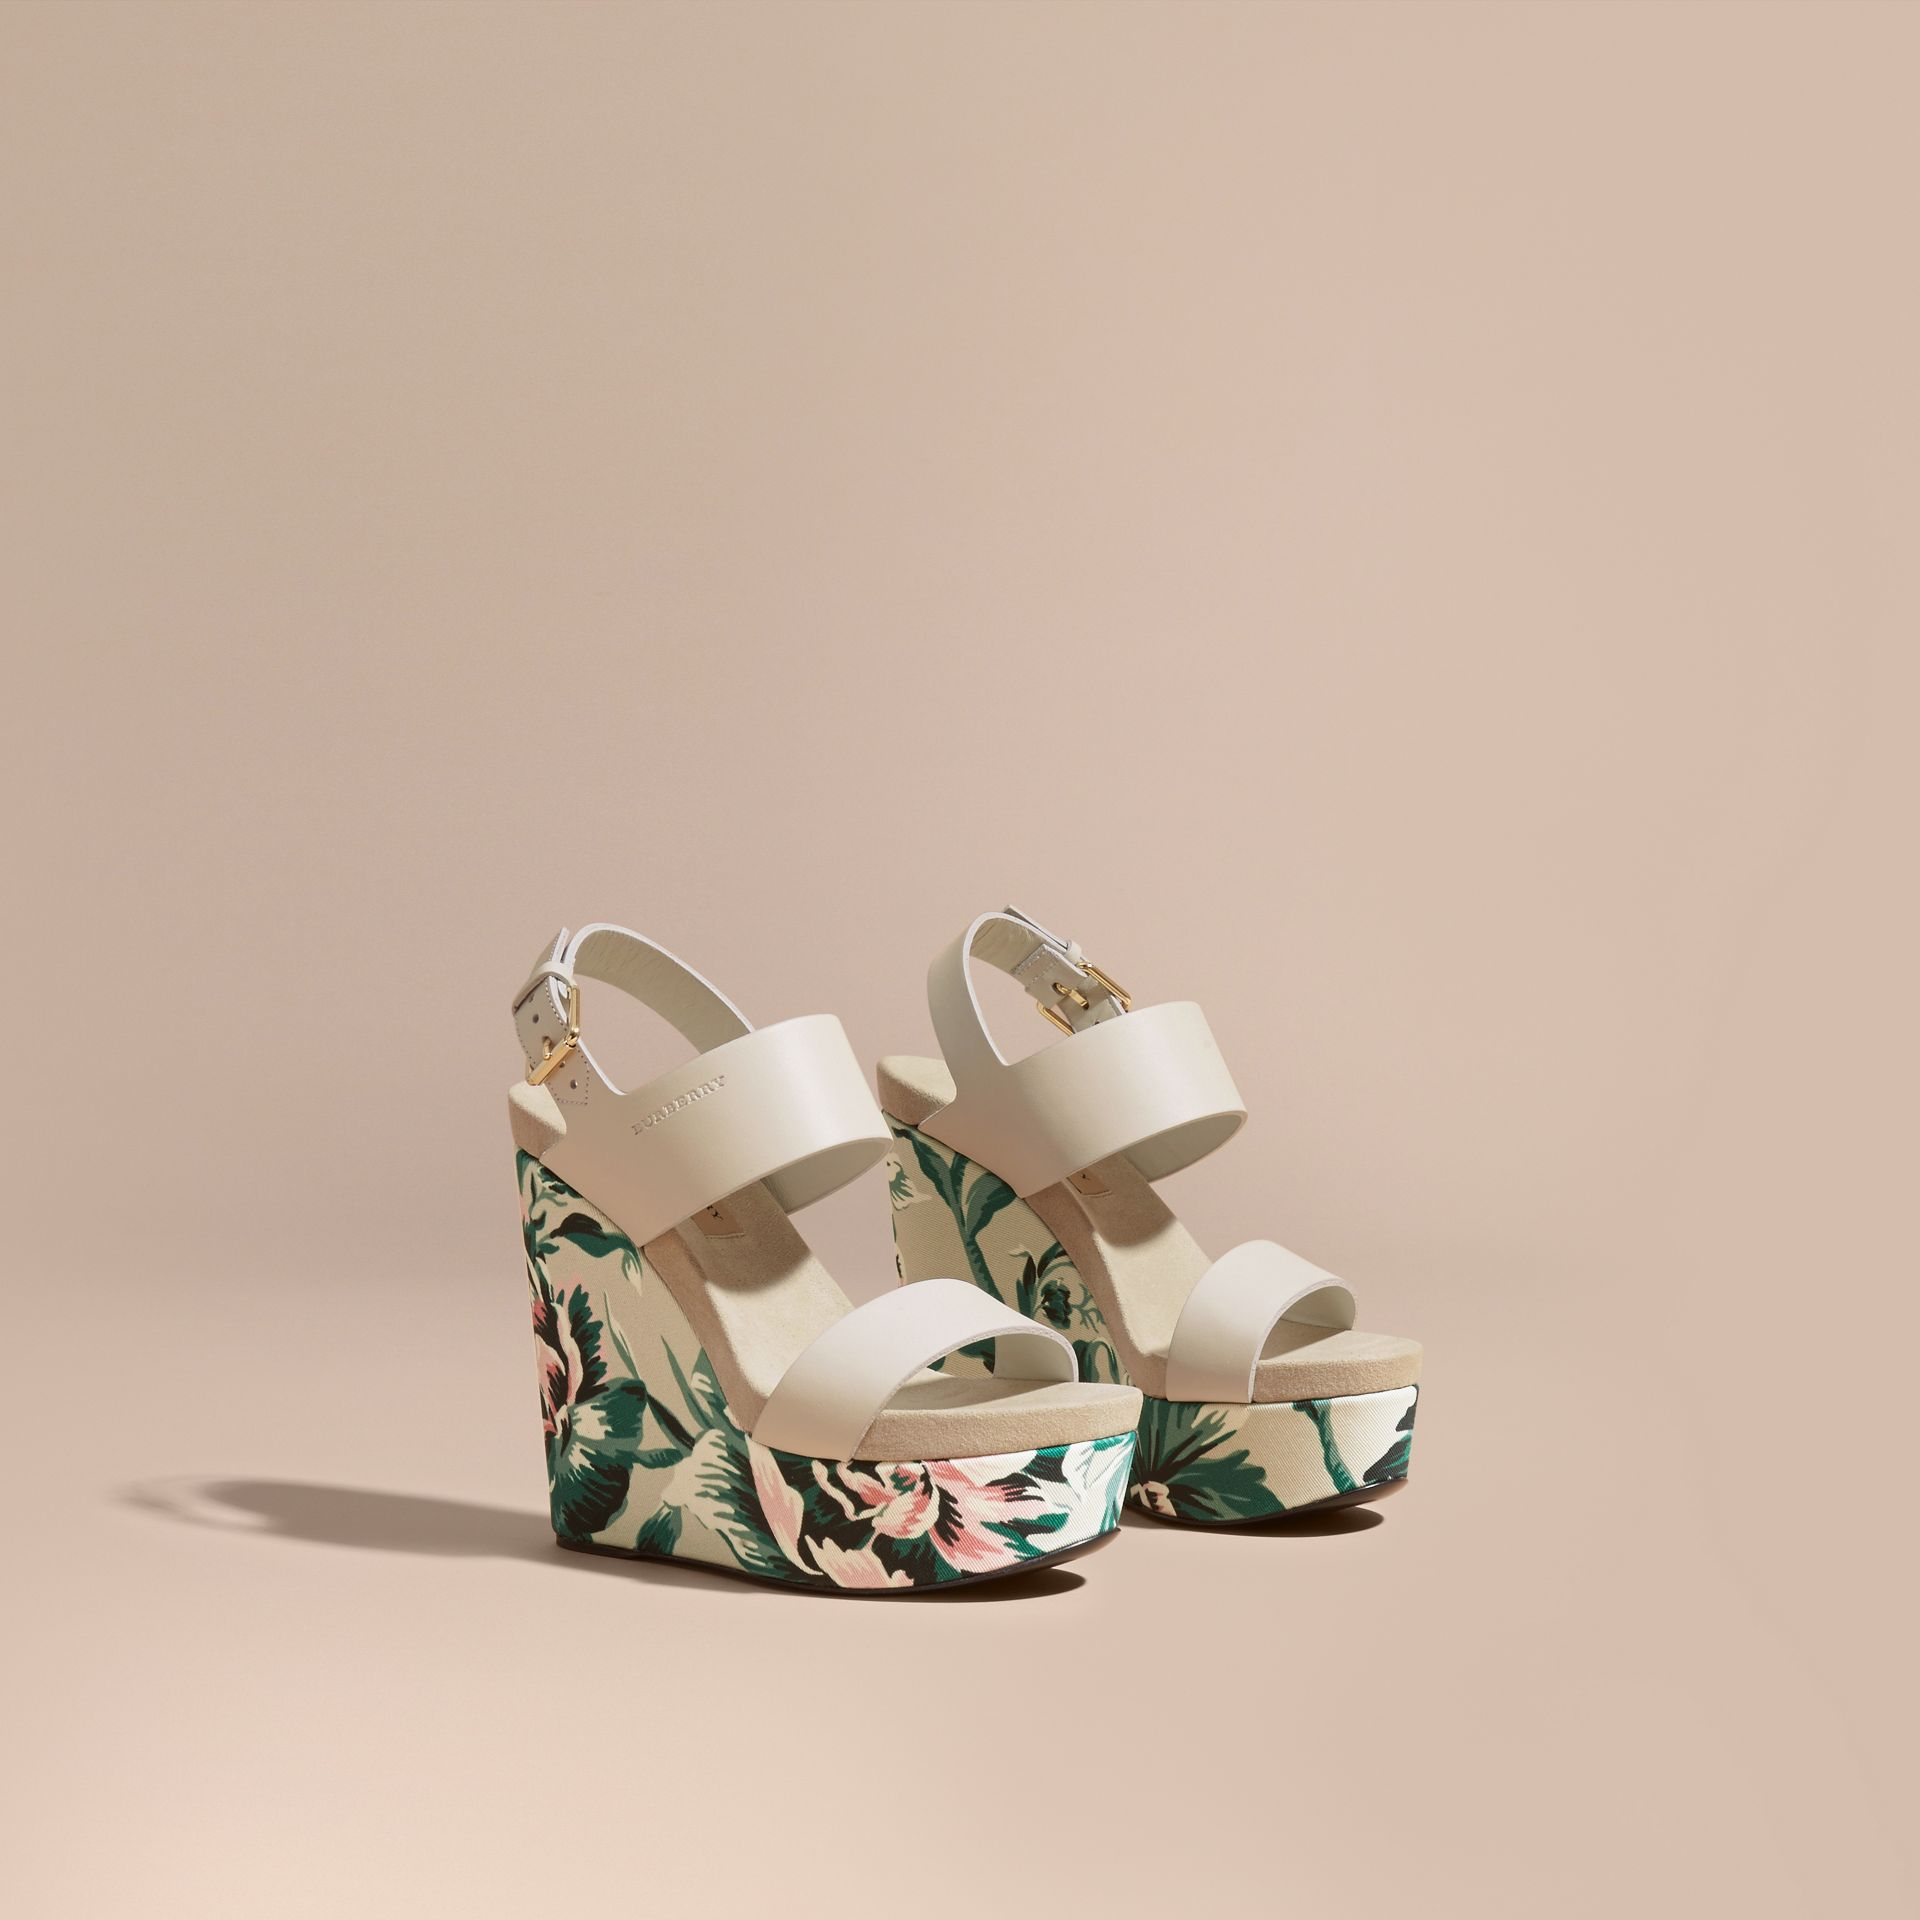 Peony Rose Print Leather Platform Wedges Emerald Green - gallery image 1